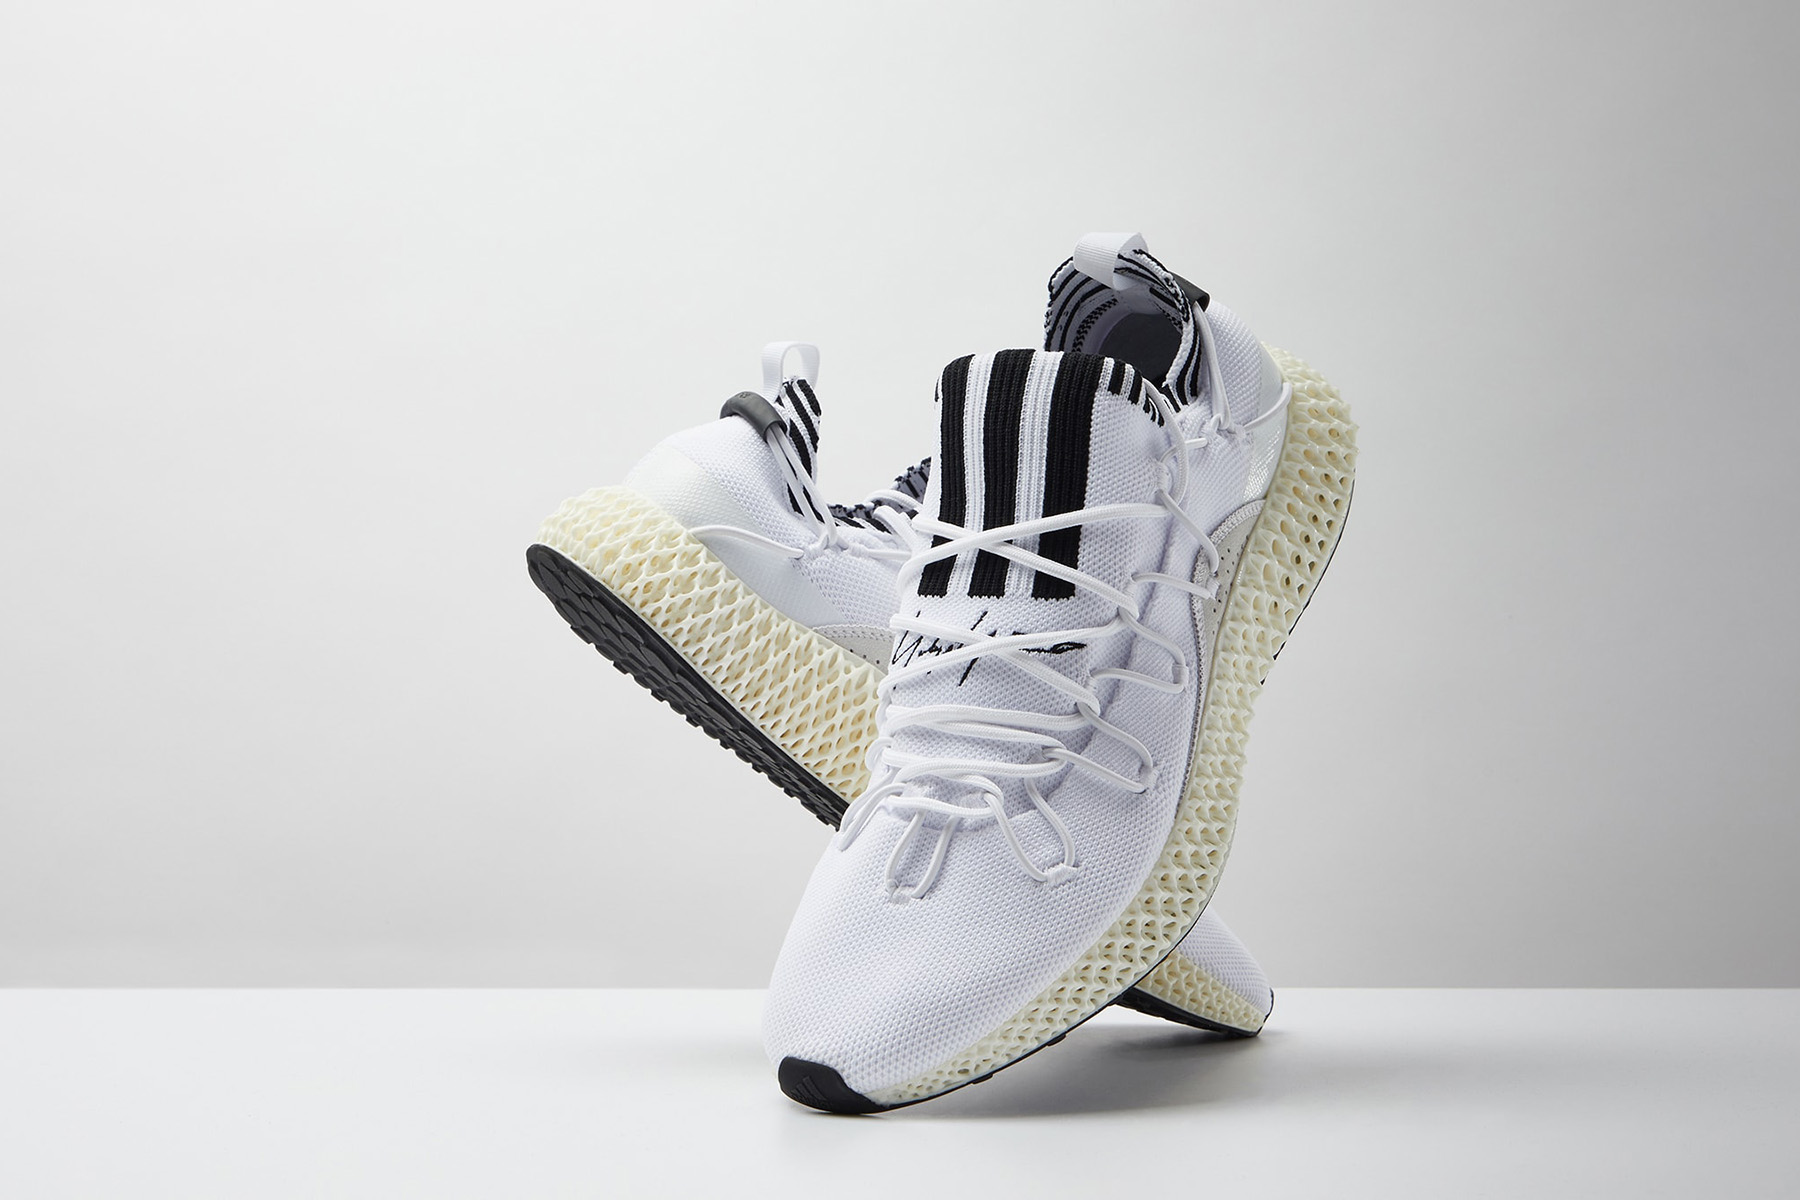 brand new 23f2e 99916 Mark your calendar for the 2nd of May. On that date, adidas Y-3 will release  the RUNNER 4D II. Powered by the 4D cushion system, the sneaker s upper ...